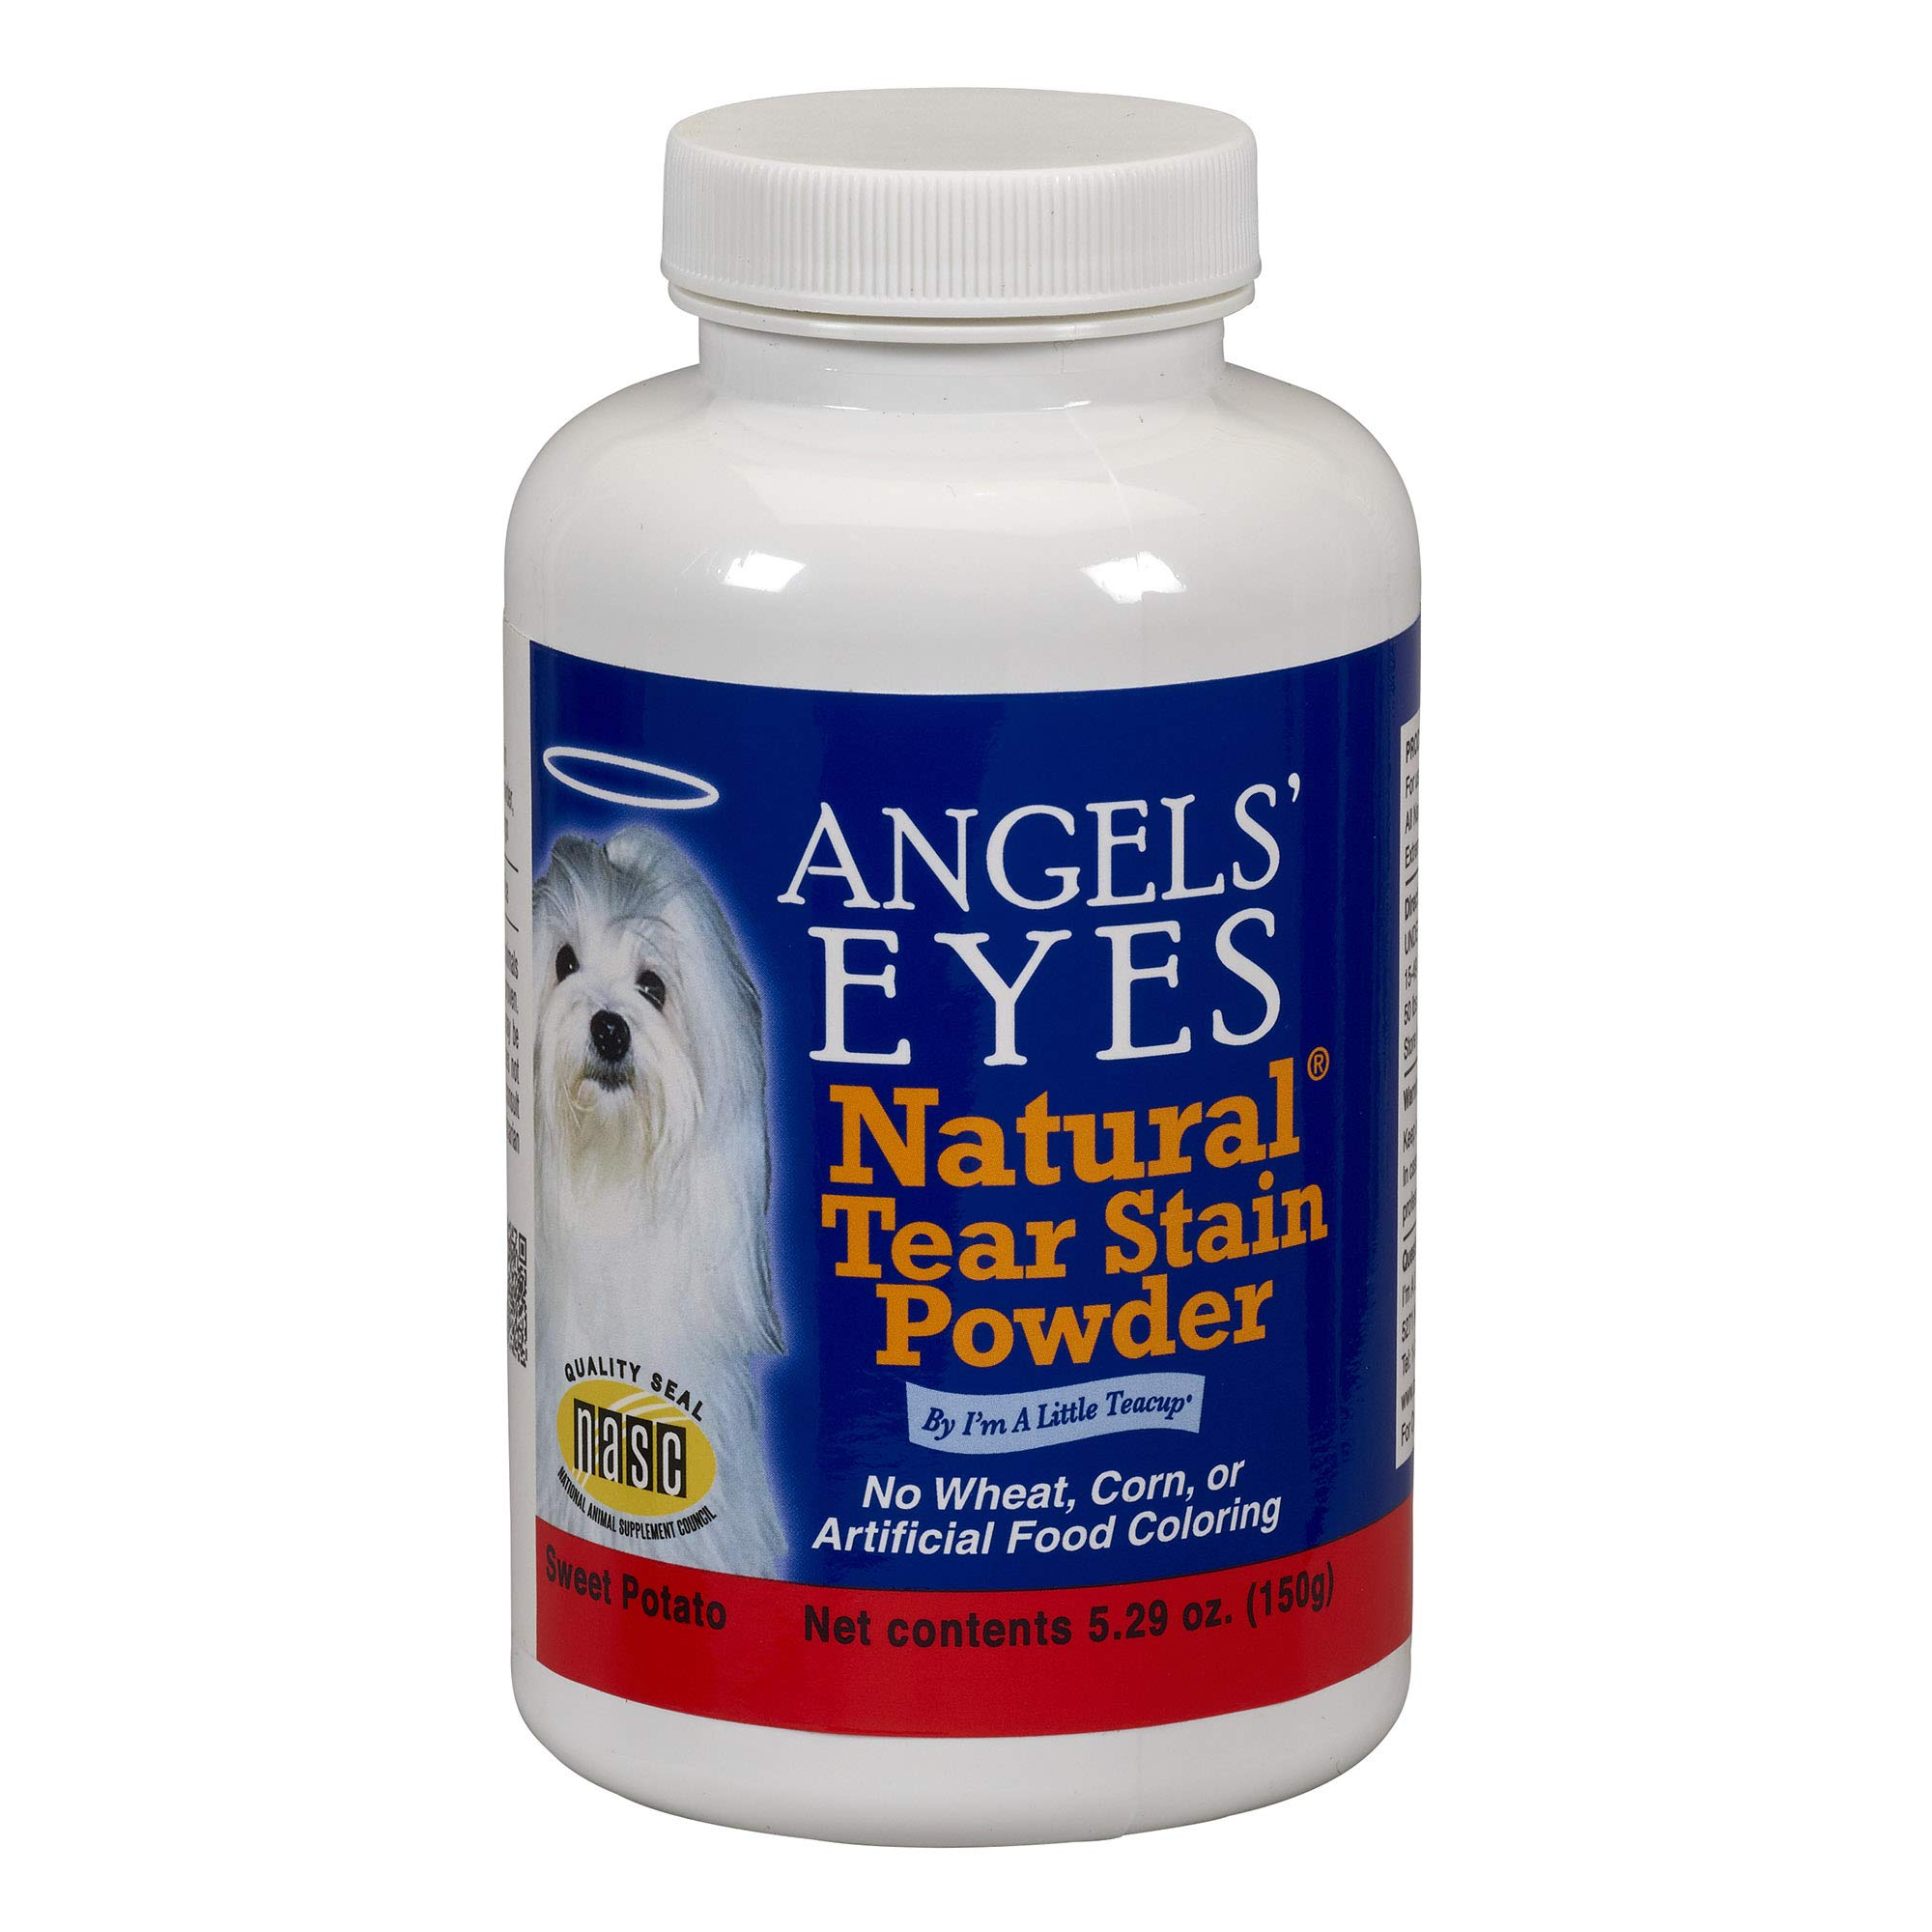 ANGELS's Eyes Natural Tear Stain Eliminator Remover, Vegetarian Recipe with Sweet Potato, 150-Gram by ANGELS' EYES